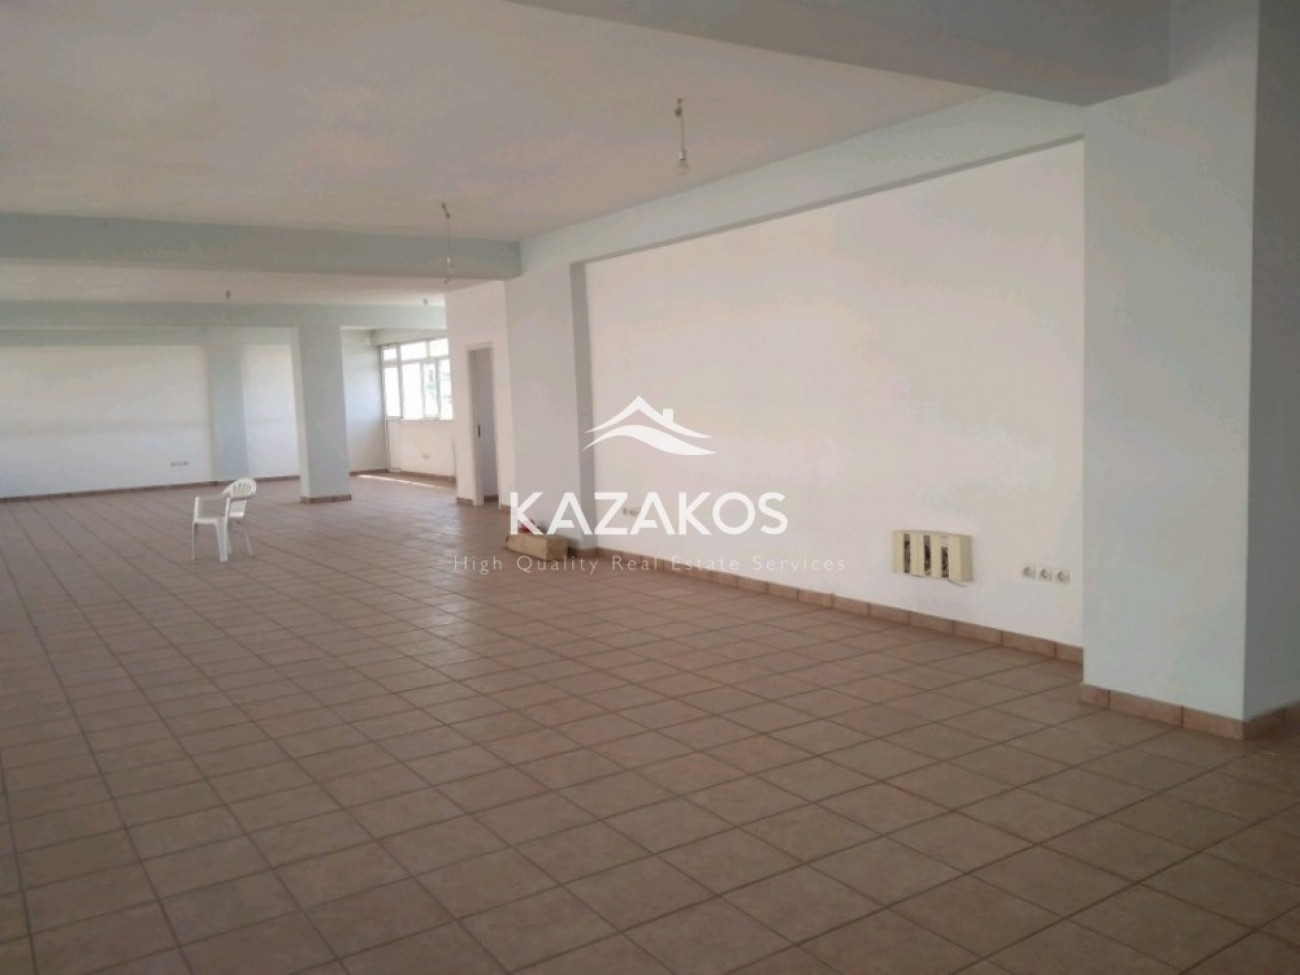 Building for Rent in Gerakas, North & East Region of Athens, Greece